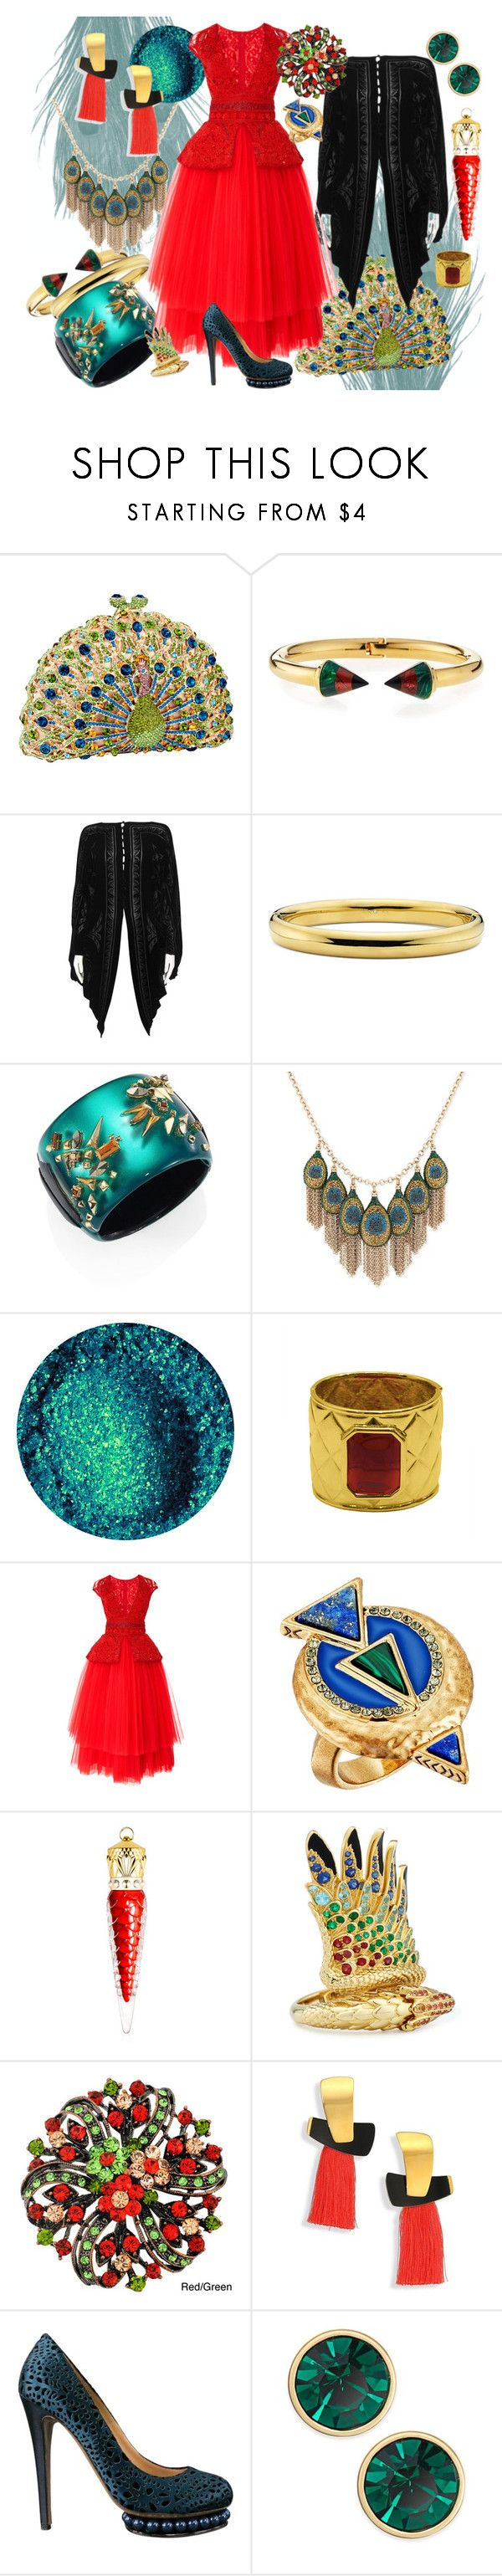 """""""Crimson Peacock Queen"""" by strawberryblueart on Polyvore featuring Vita Fede, Patricia Lester, Alexis Bittar, Lucky Brand, Valentino, Naeem Khan, House of Harlow 1960, Christian Louboutin, Lalique and Lizzie Fortunato"""